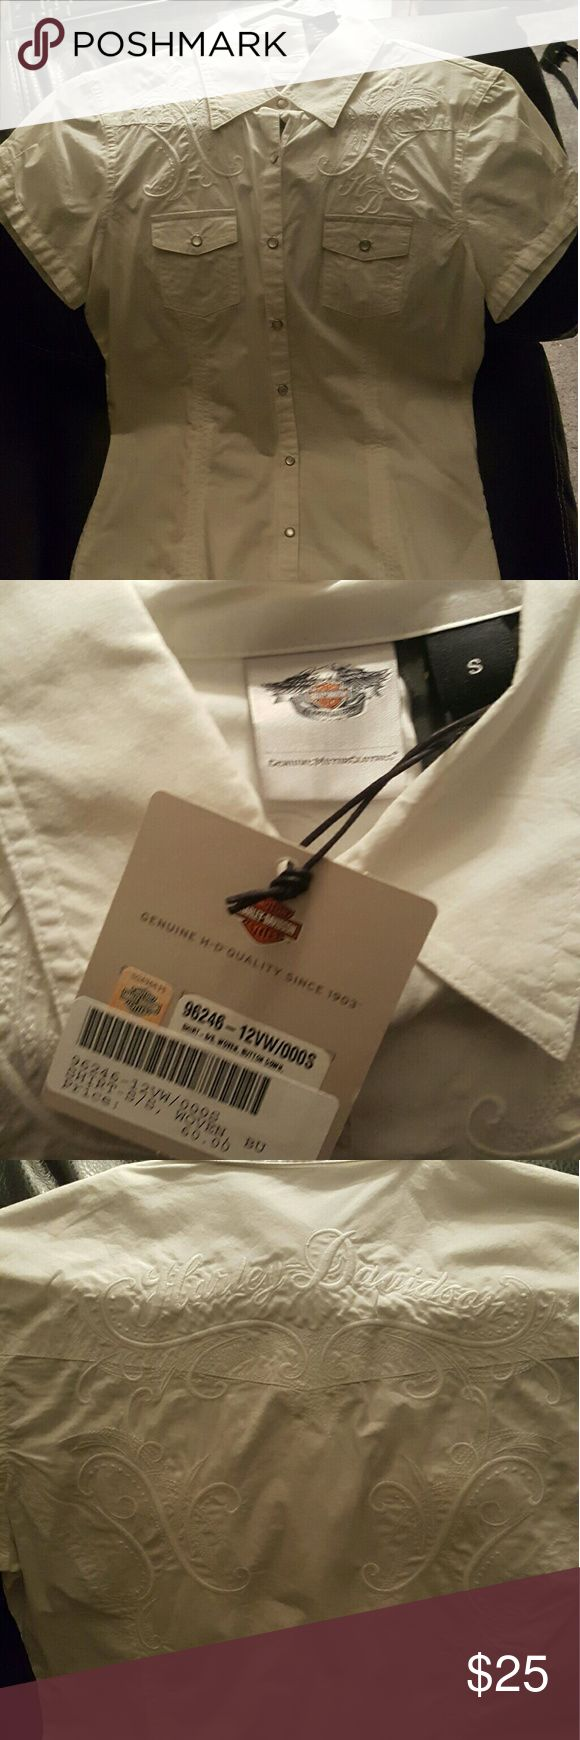 Harley Davidson Shirt from the Harley Store Brand new with tags, white Harley Davidson Shirt size small in women's. Harley-Davidson Tops